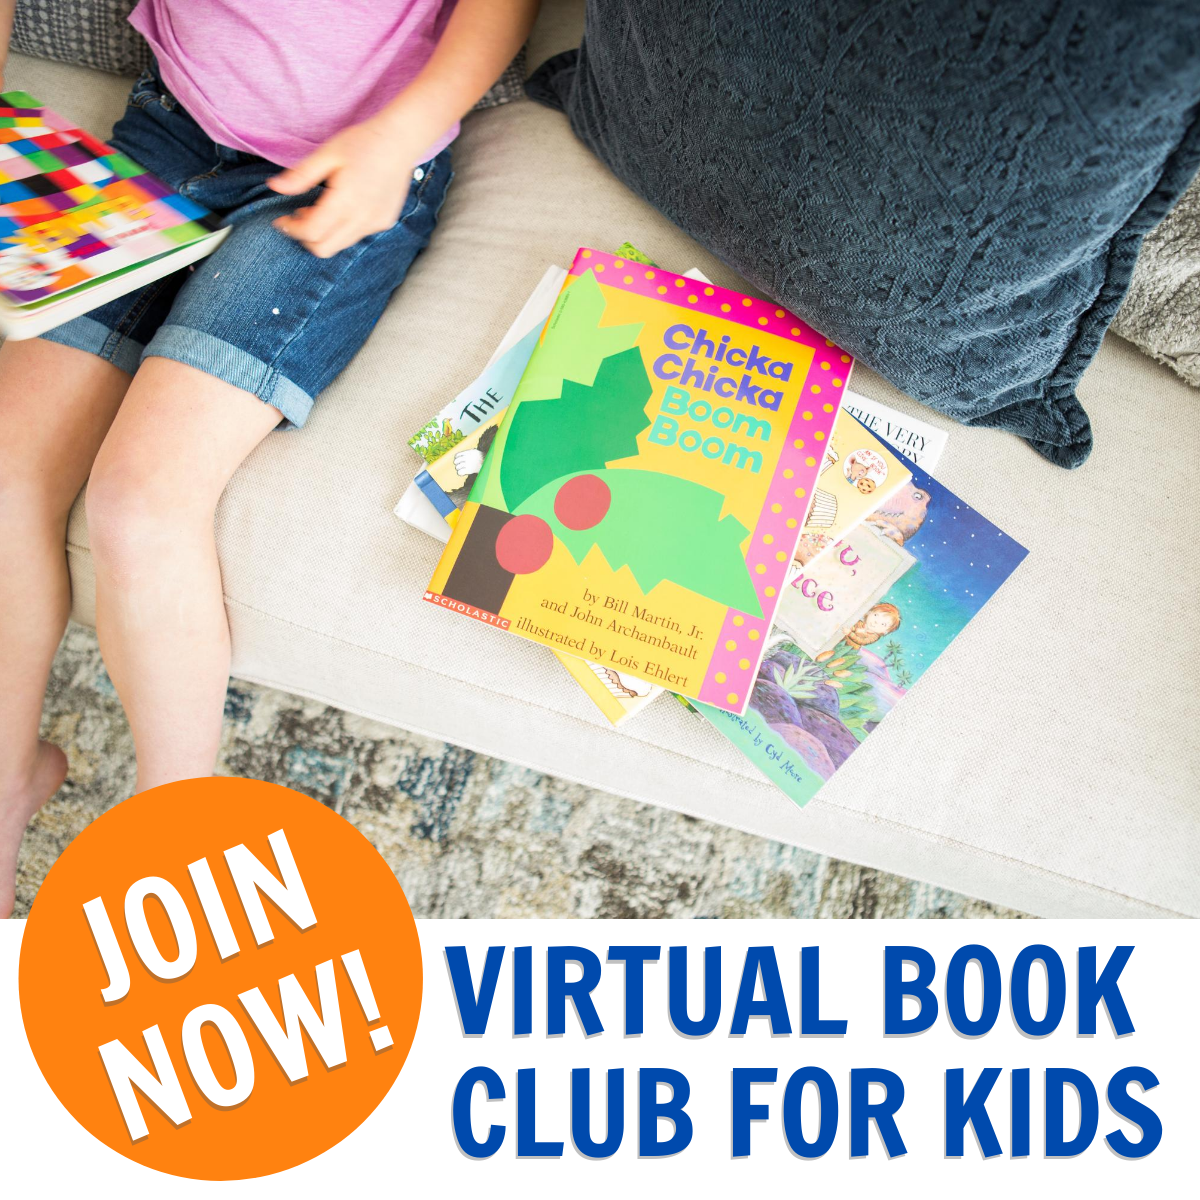 pile of books beside a child sitting down. large orange circle with join now and text to the side reading virtual book club for kids